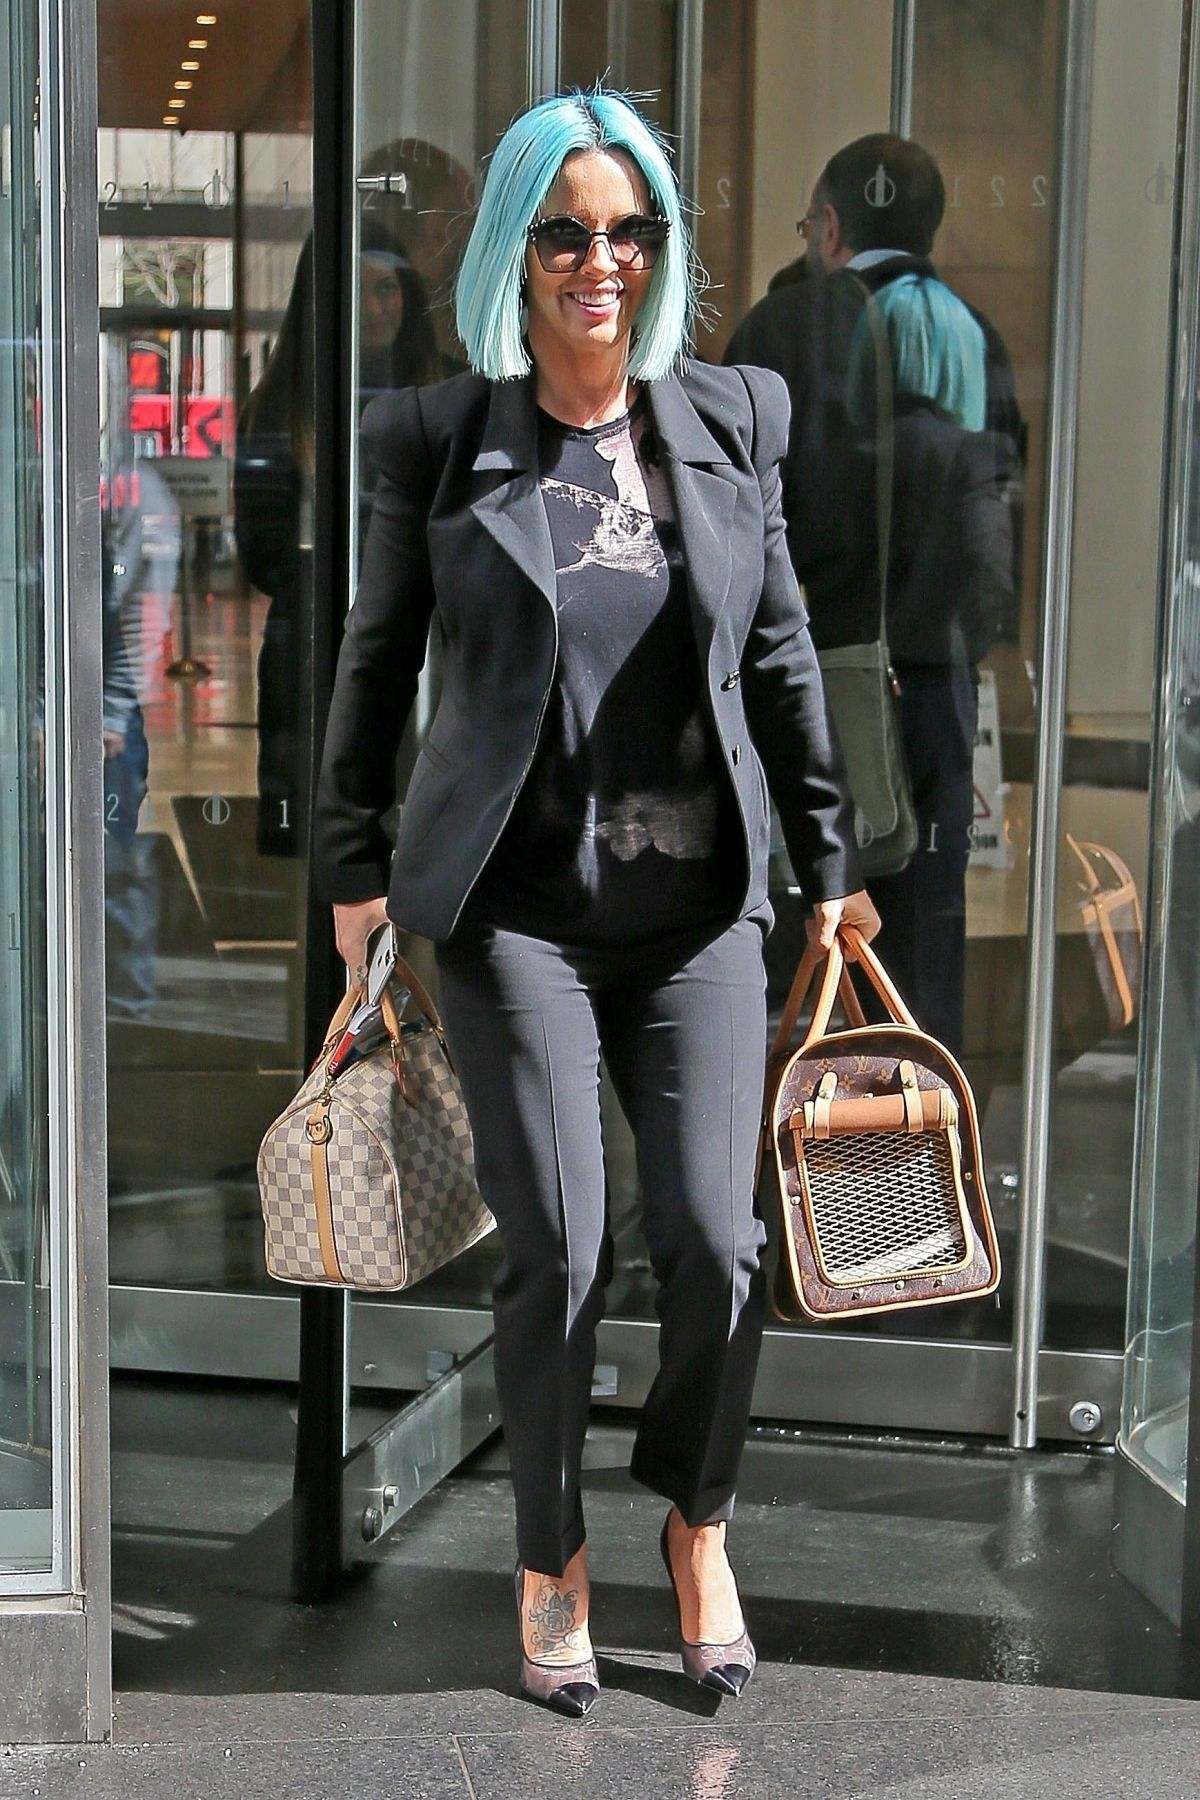 6f3616e26954 Jenny McCarthy Seen carrying her TWO Louis Vuitton bags while leaving work in  New York City